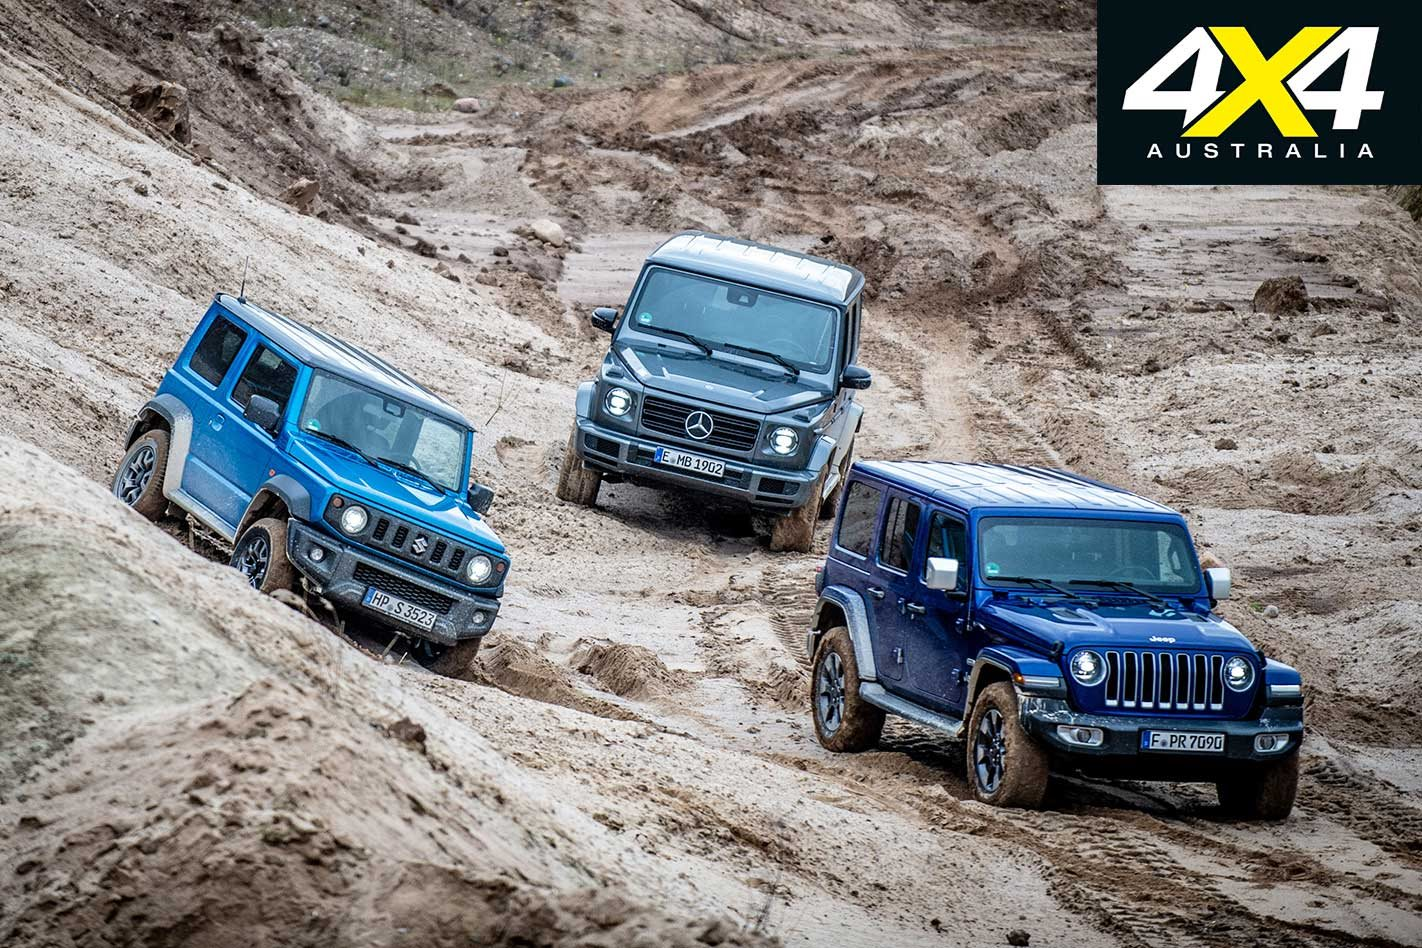 2019 Suzuki Jimny Vs Jeep Jl Wrangler Vs Mercedes Benz G Class Comparison Review